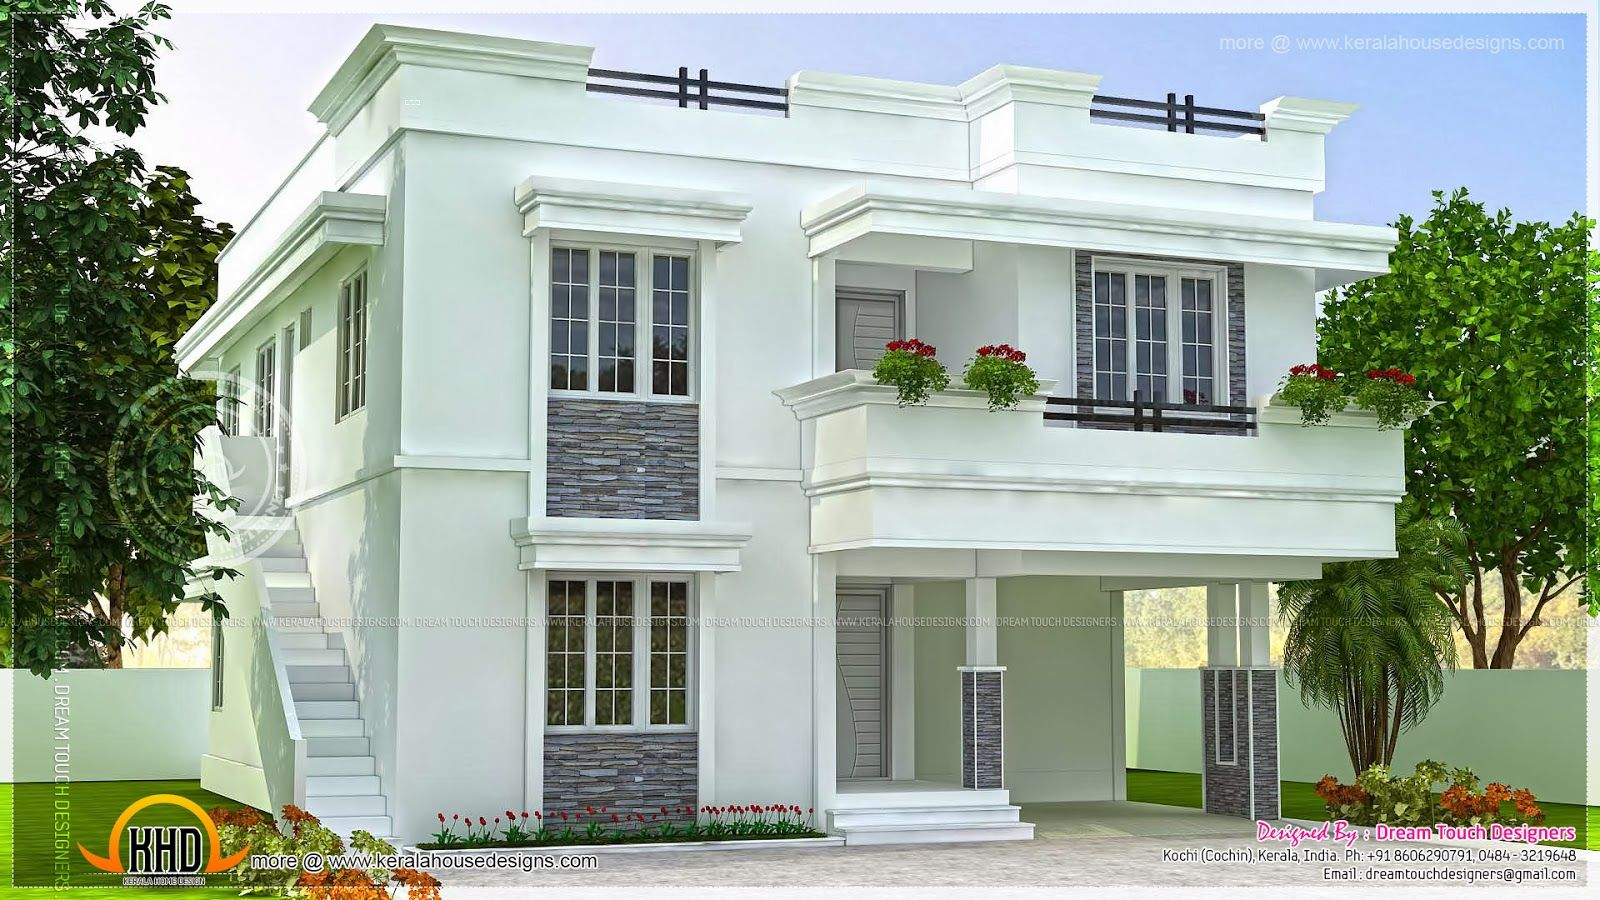 Modern beautiful home modern beautiful home design indian for Beautiful modern home designs